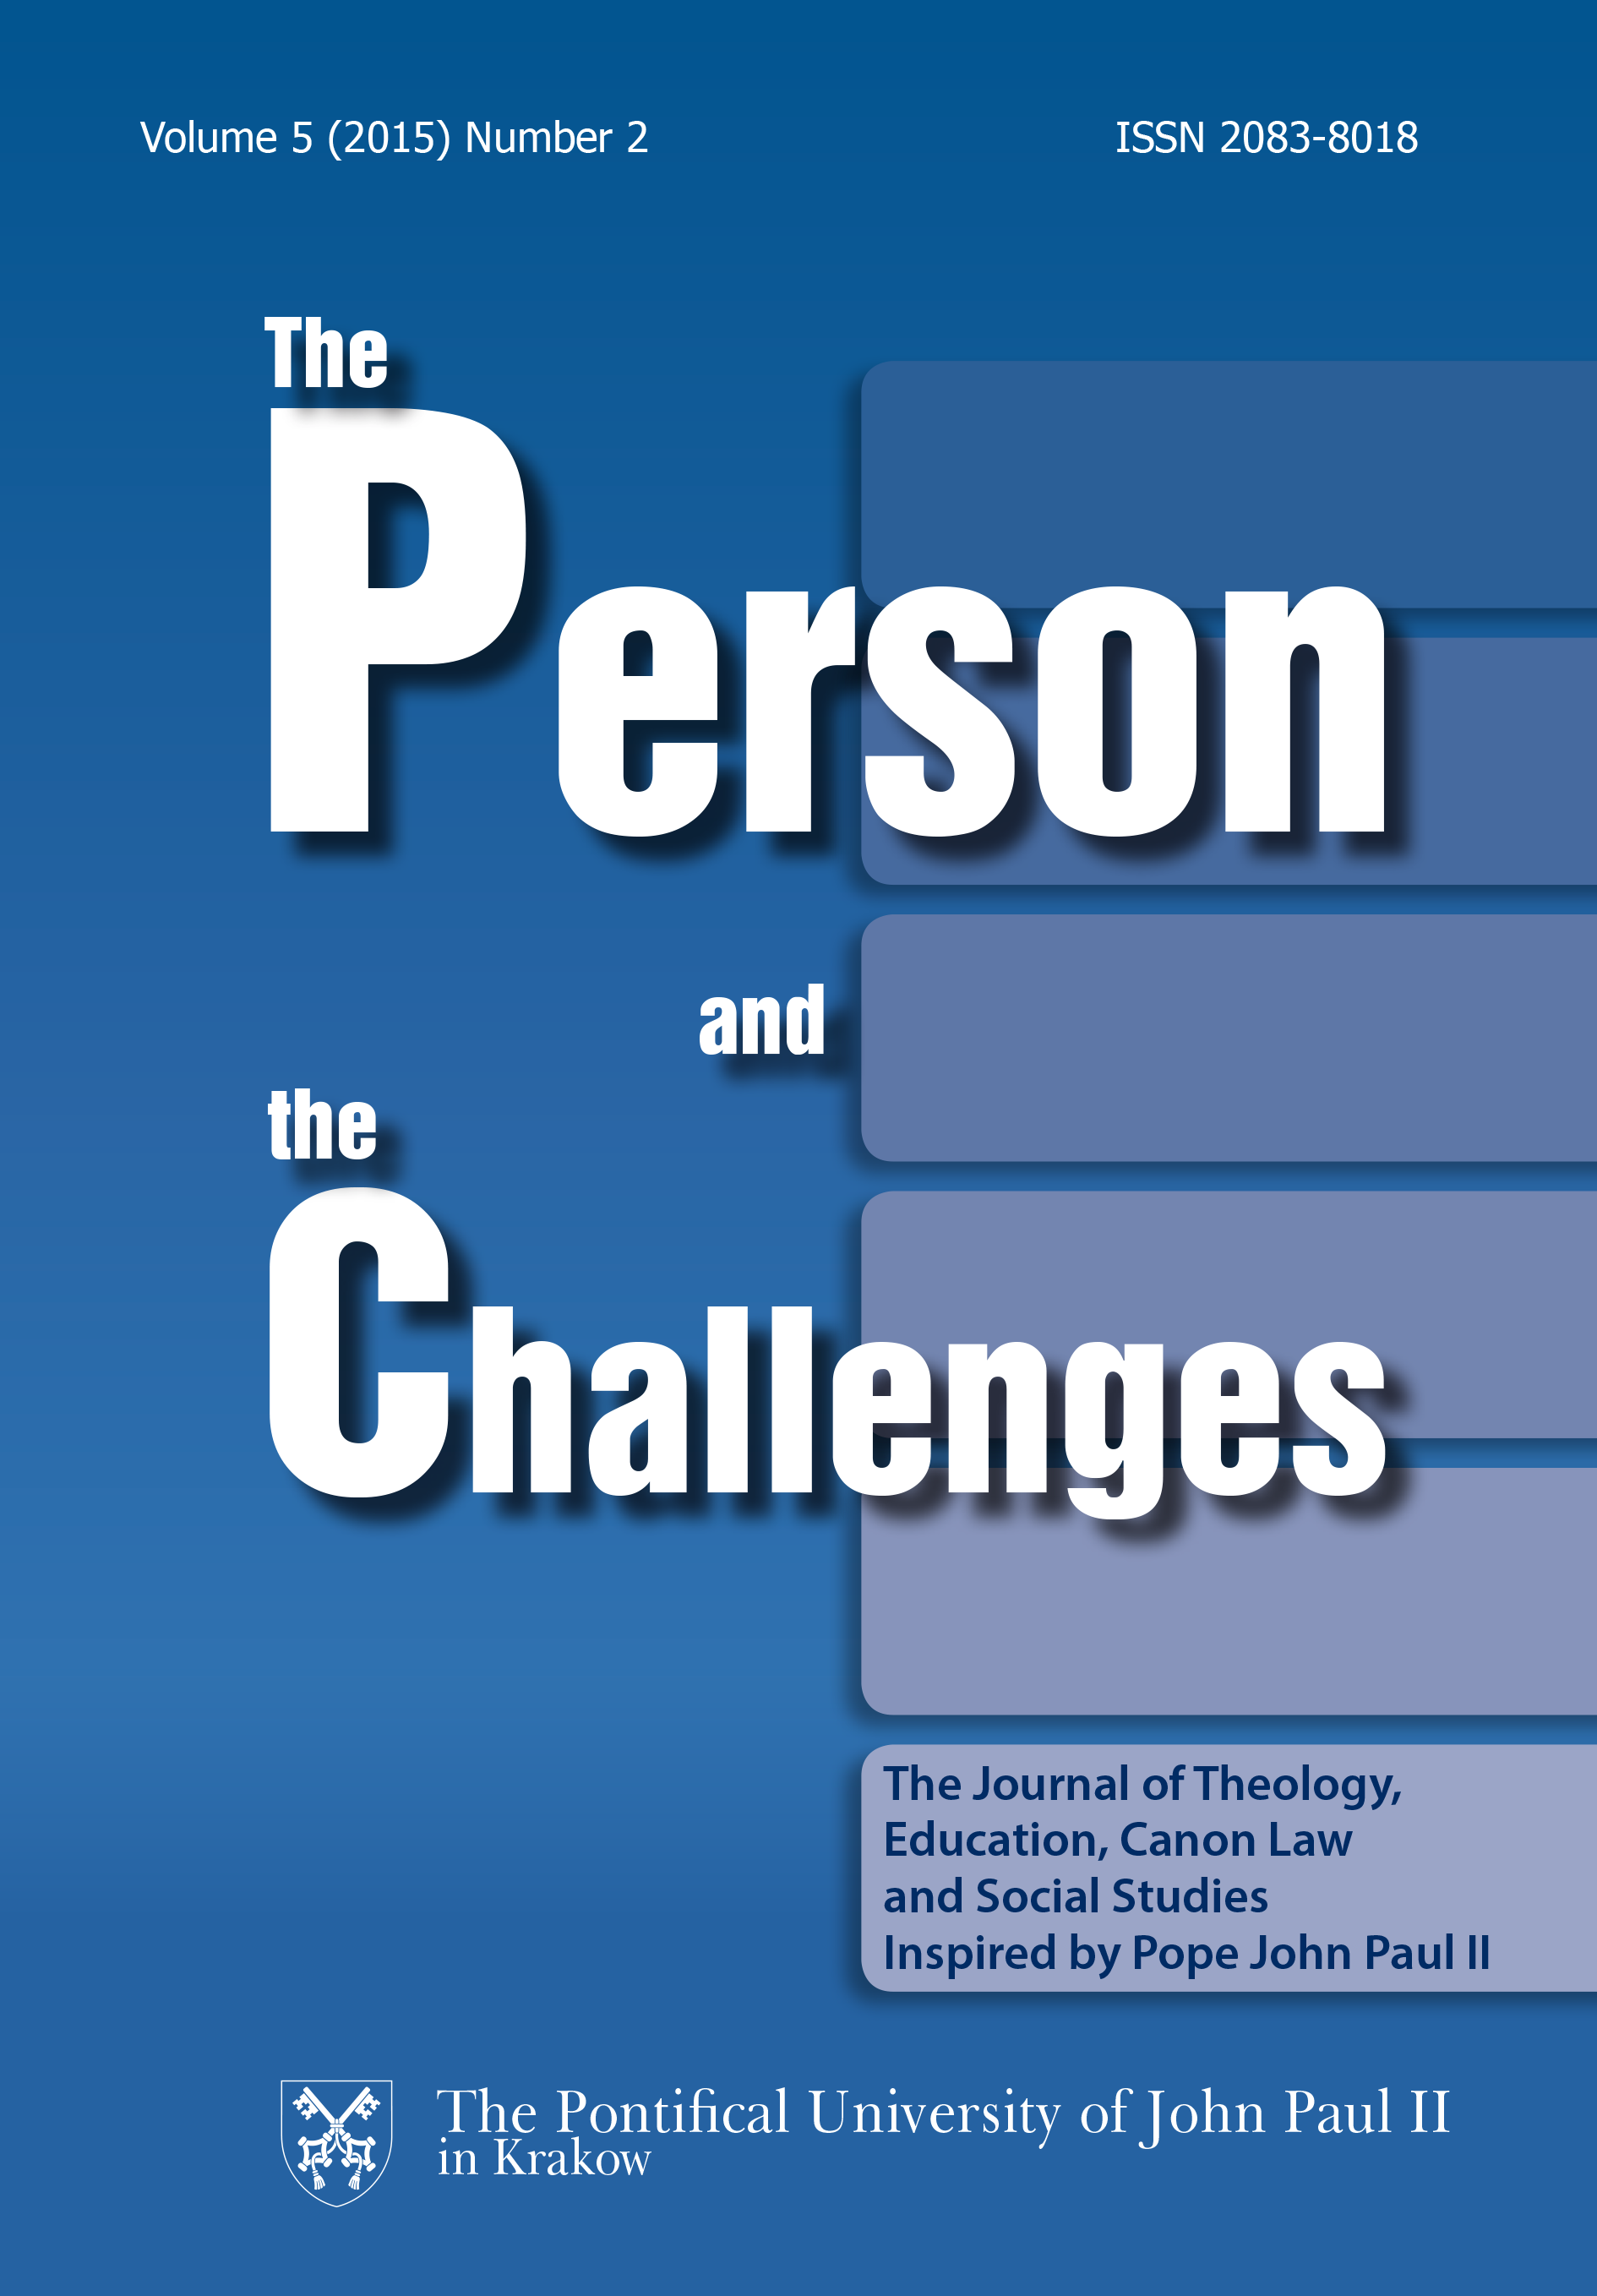 The Person and the Challenges. The Journal of Theology, Education, Canon Law and Social Studies Inspired by Pope John Paul II